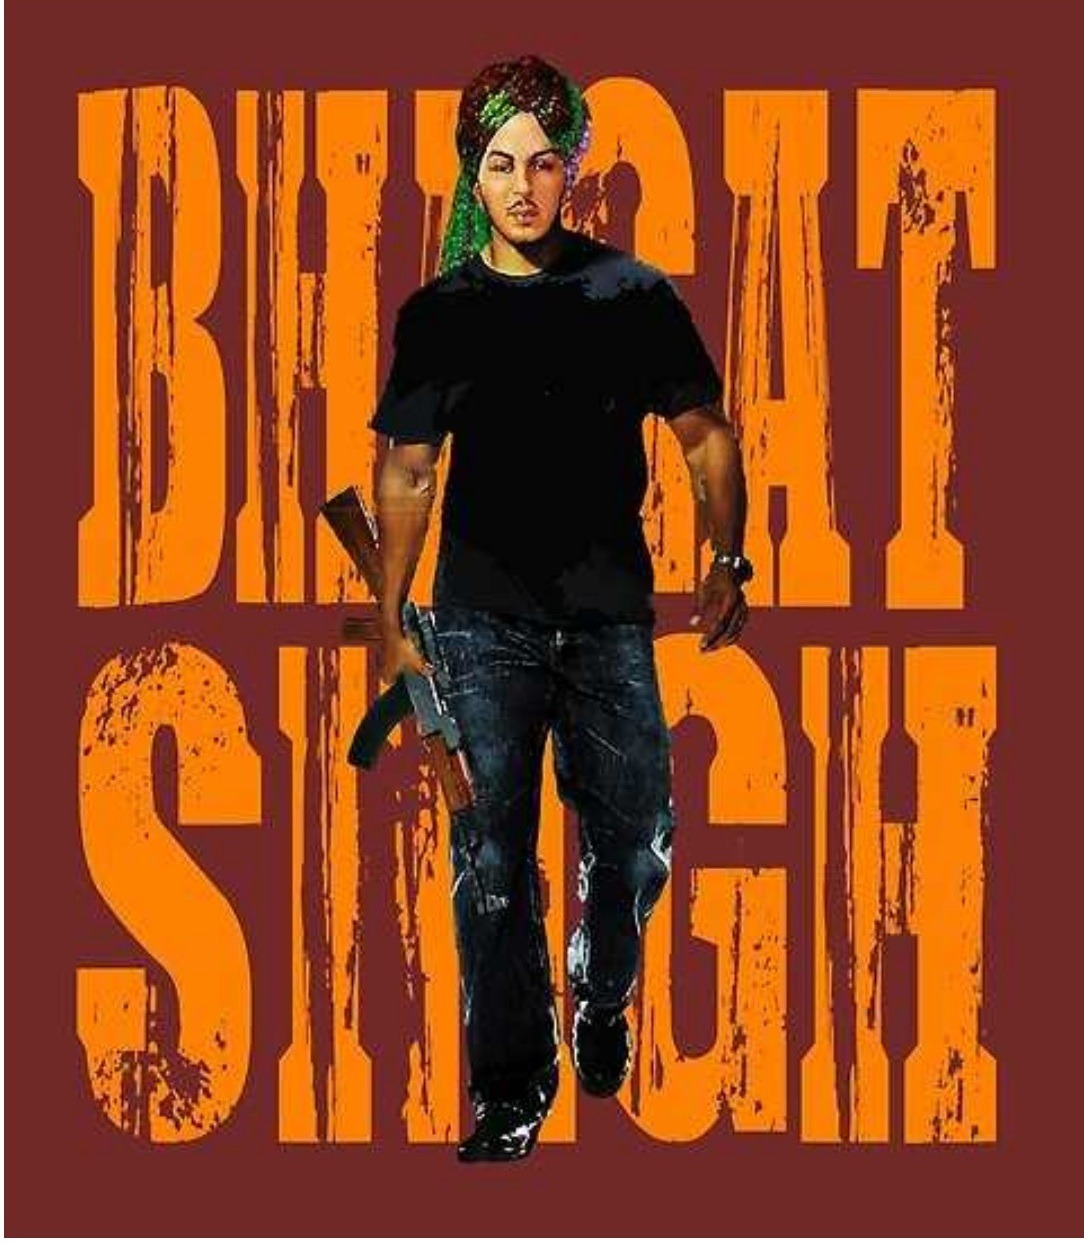 shaheed bhagat singh is coming with gun. bhagat singh wear black t-shirt and blue jeans with black shoes. he tie turban with colour of indian flag.